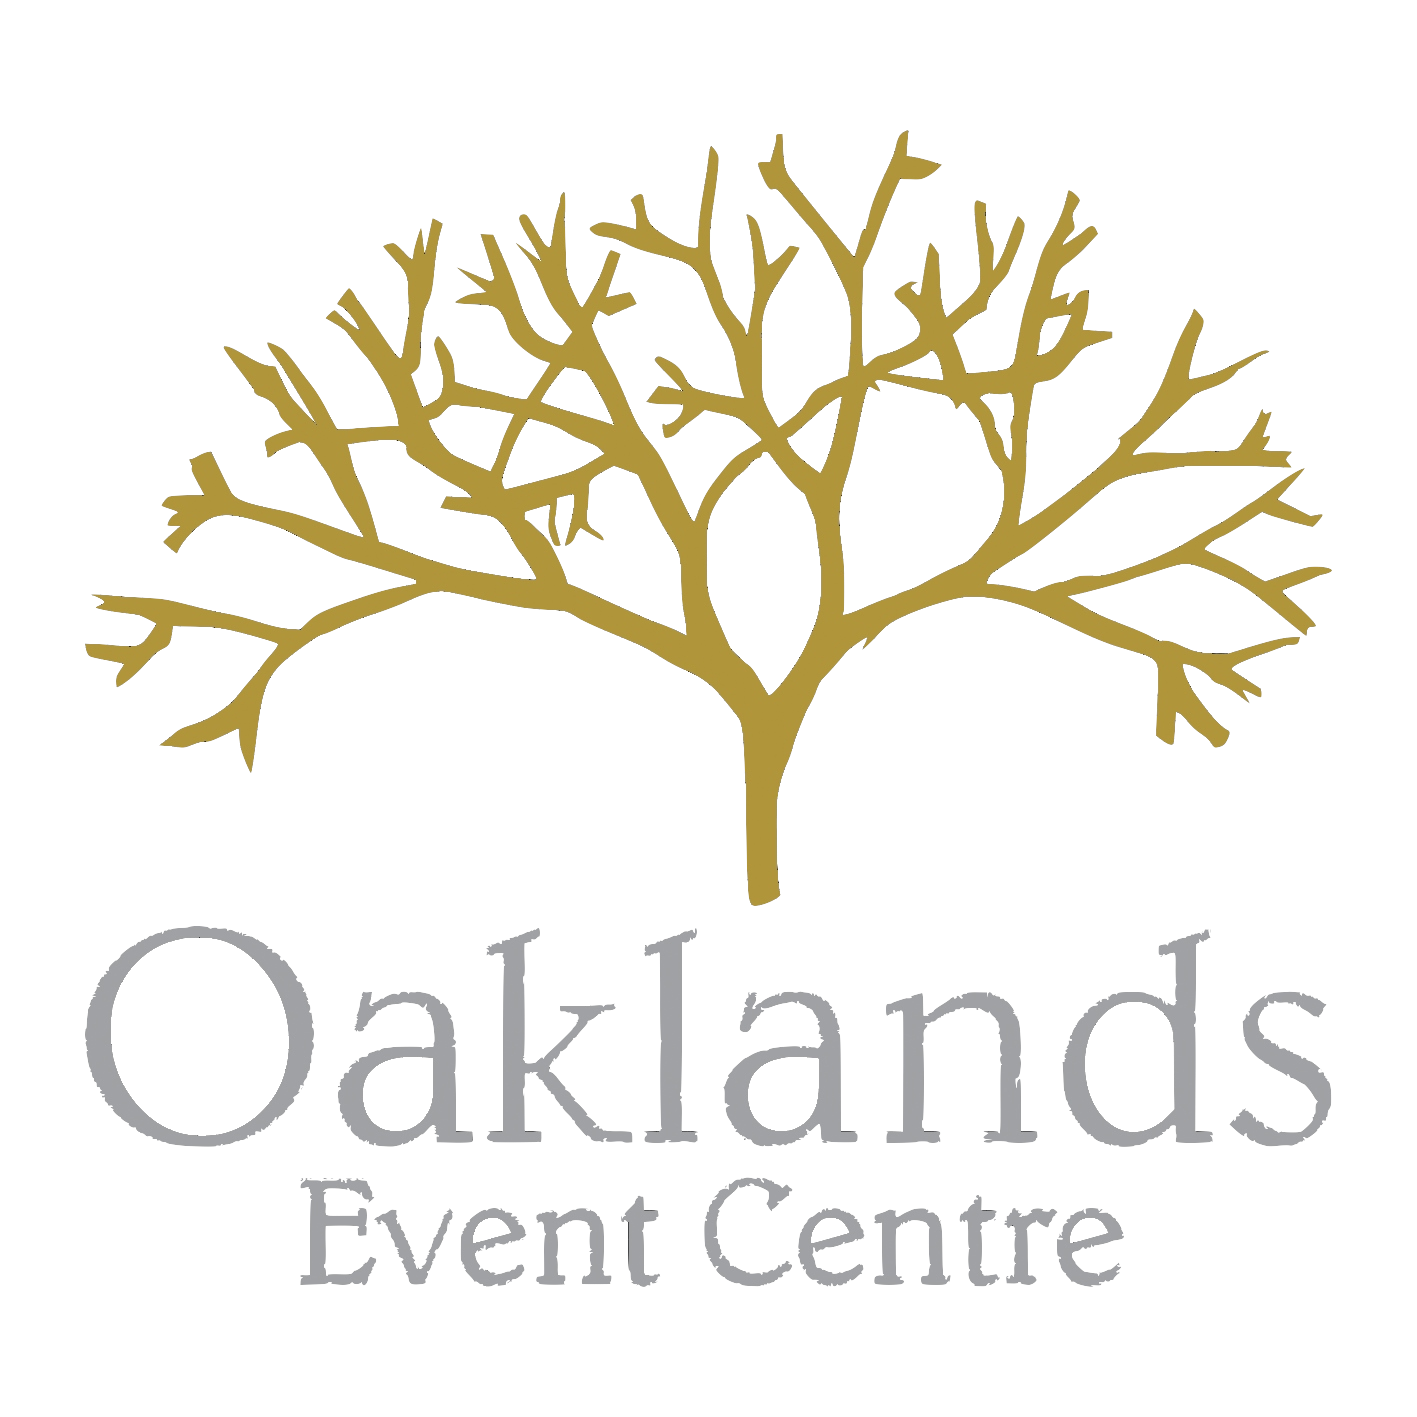 OAKLANDS EVENT CENTRE